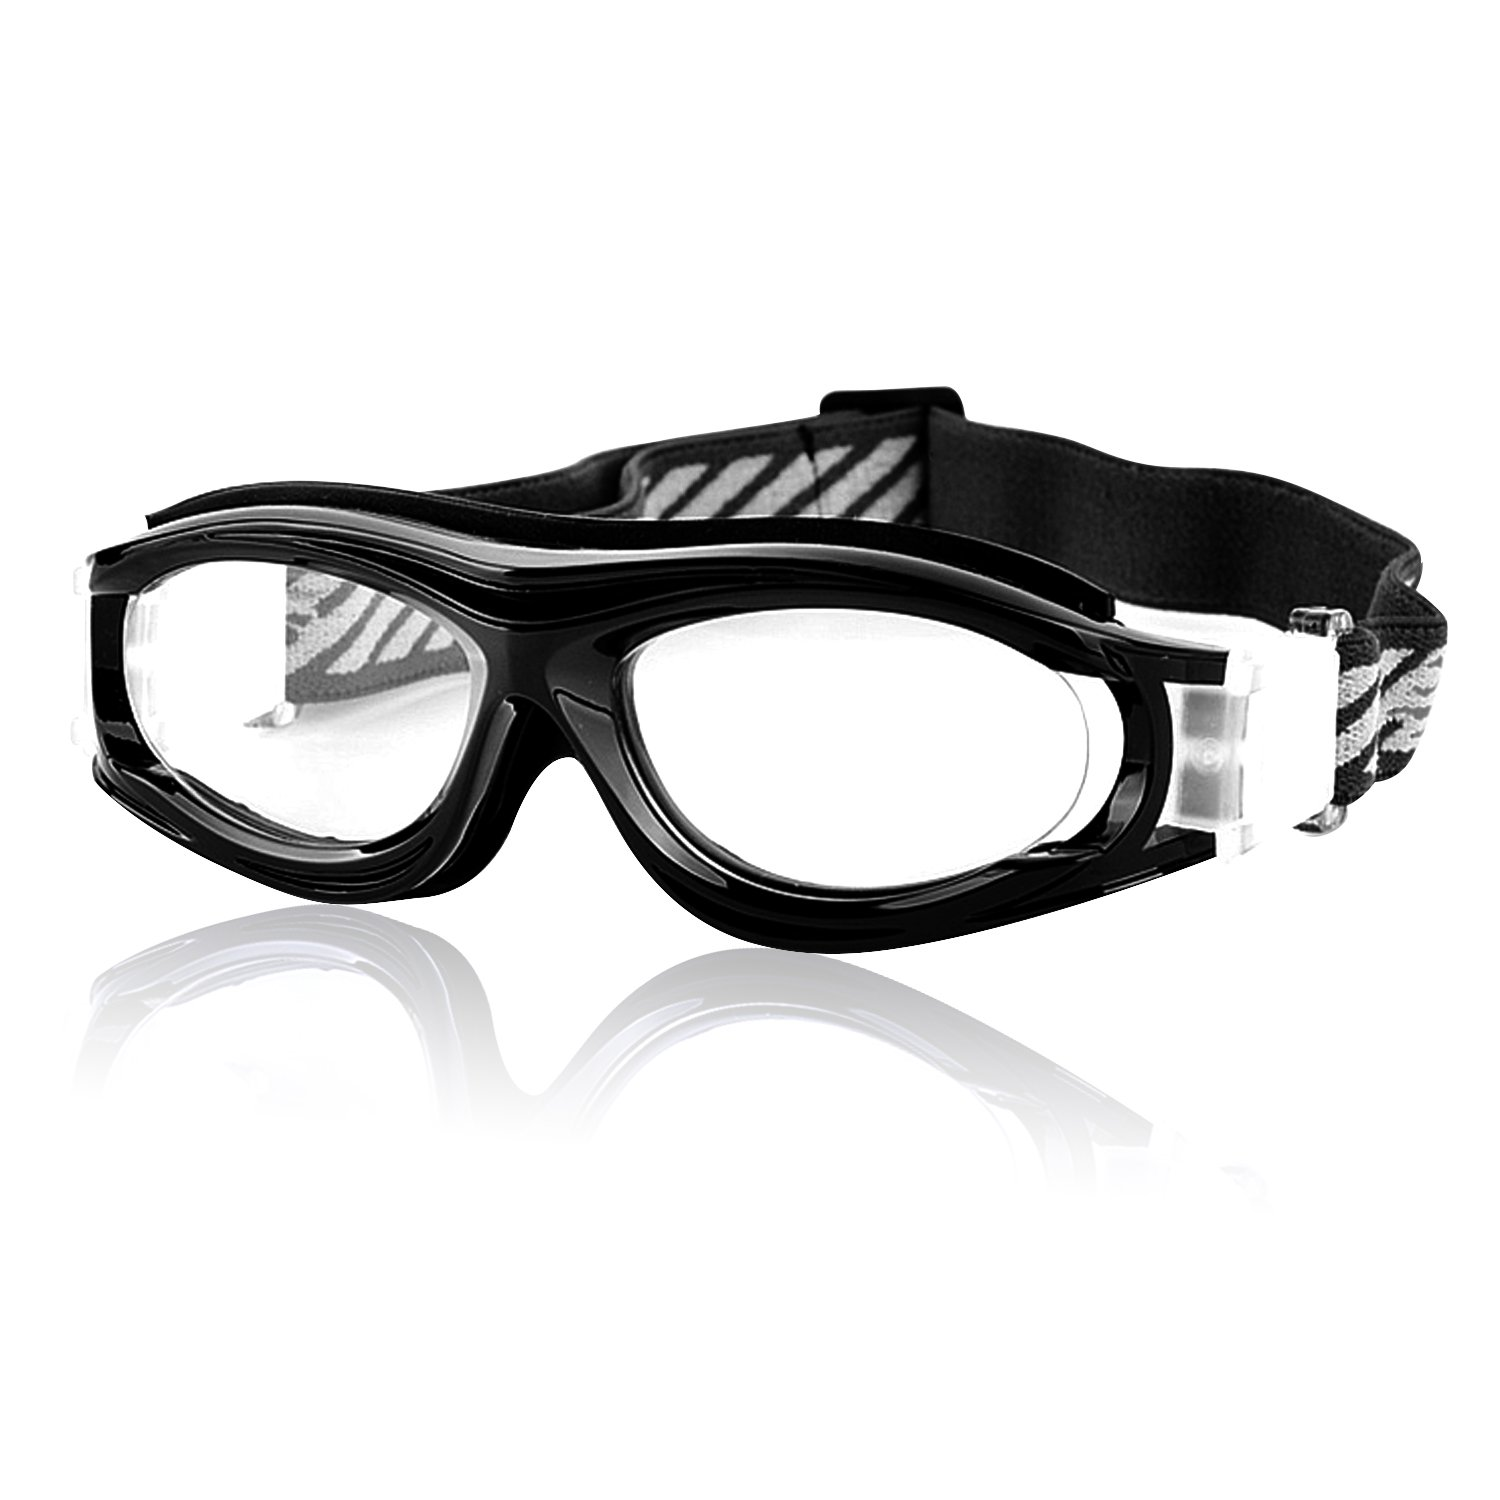 42c54c2ca5c3 Unisex Kids Sports Glasses Anti-UV Shock-Proof Protective Glasses Safety  Goggles w  Adjustable Strap for Basketball Football Hockey Rugby Baseball  Soccer ...